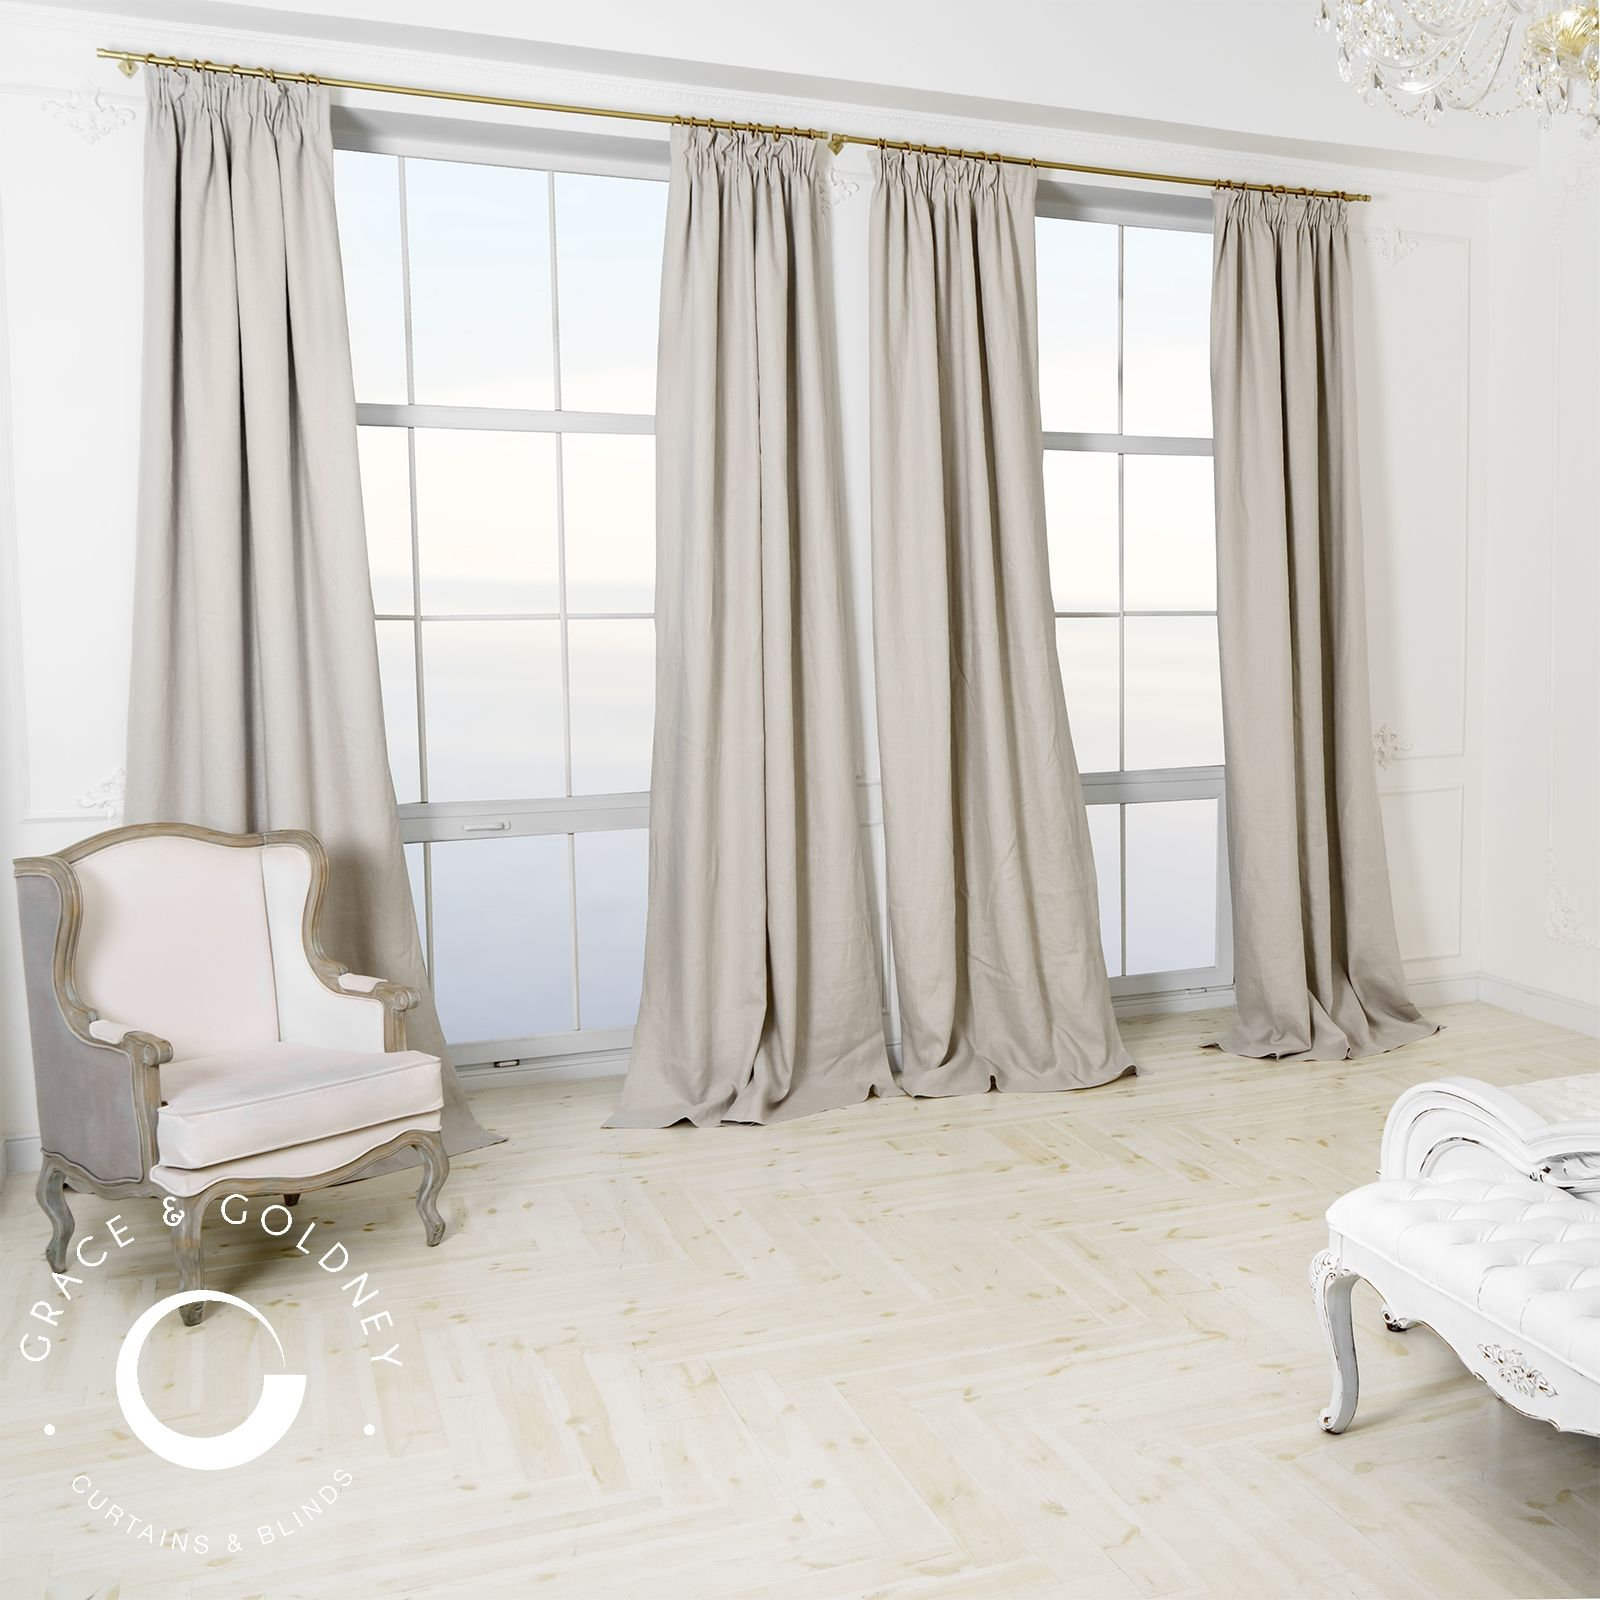 Made to measure curtains. Grey linen interlined and